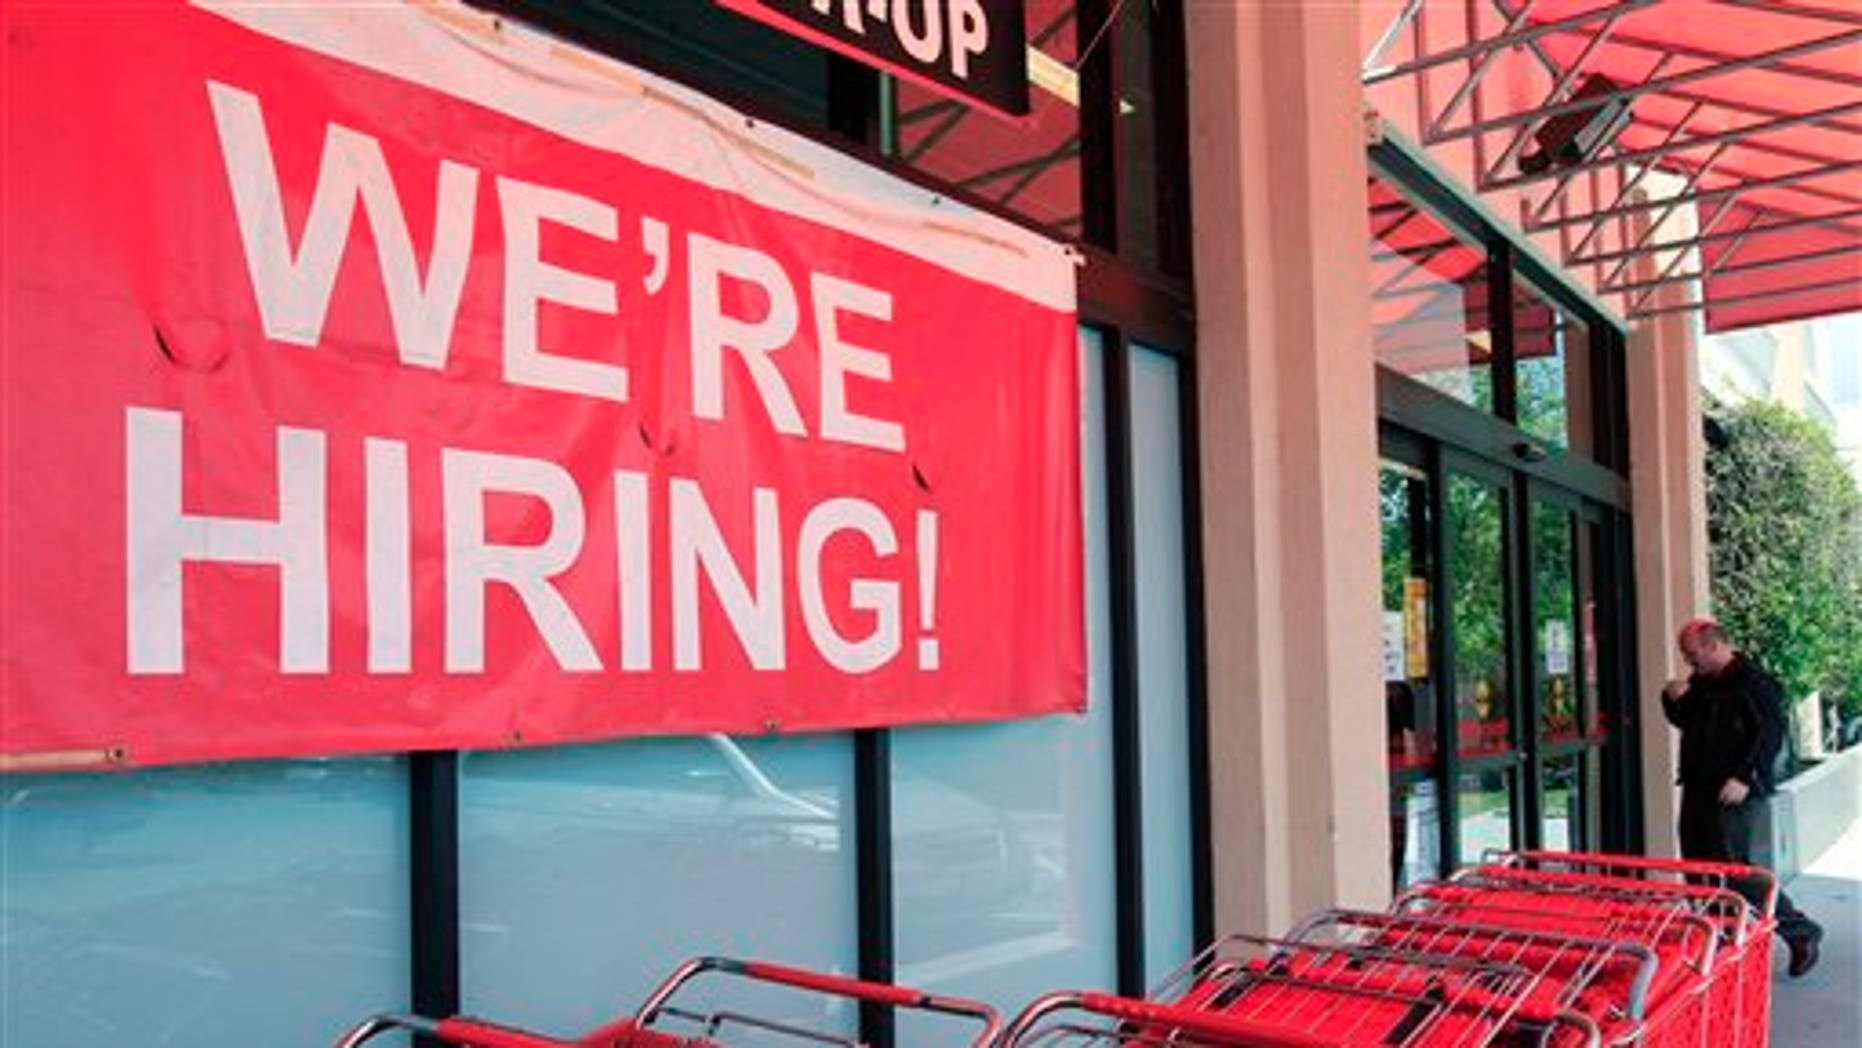 """In this April 25, 2011 photo, a """"We're Hiring!"""" sign is shown at Office Depot in Mountain View, Calif. More people sought unemployment benefits last week, the second rise in three weeks, a sign the job market's recovery is slow and uneven.(AP Photo/Paul Sakuma)"""